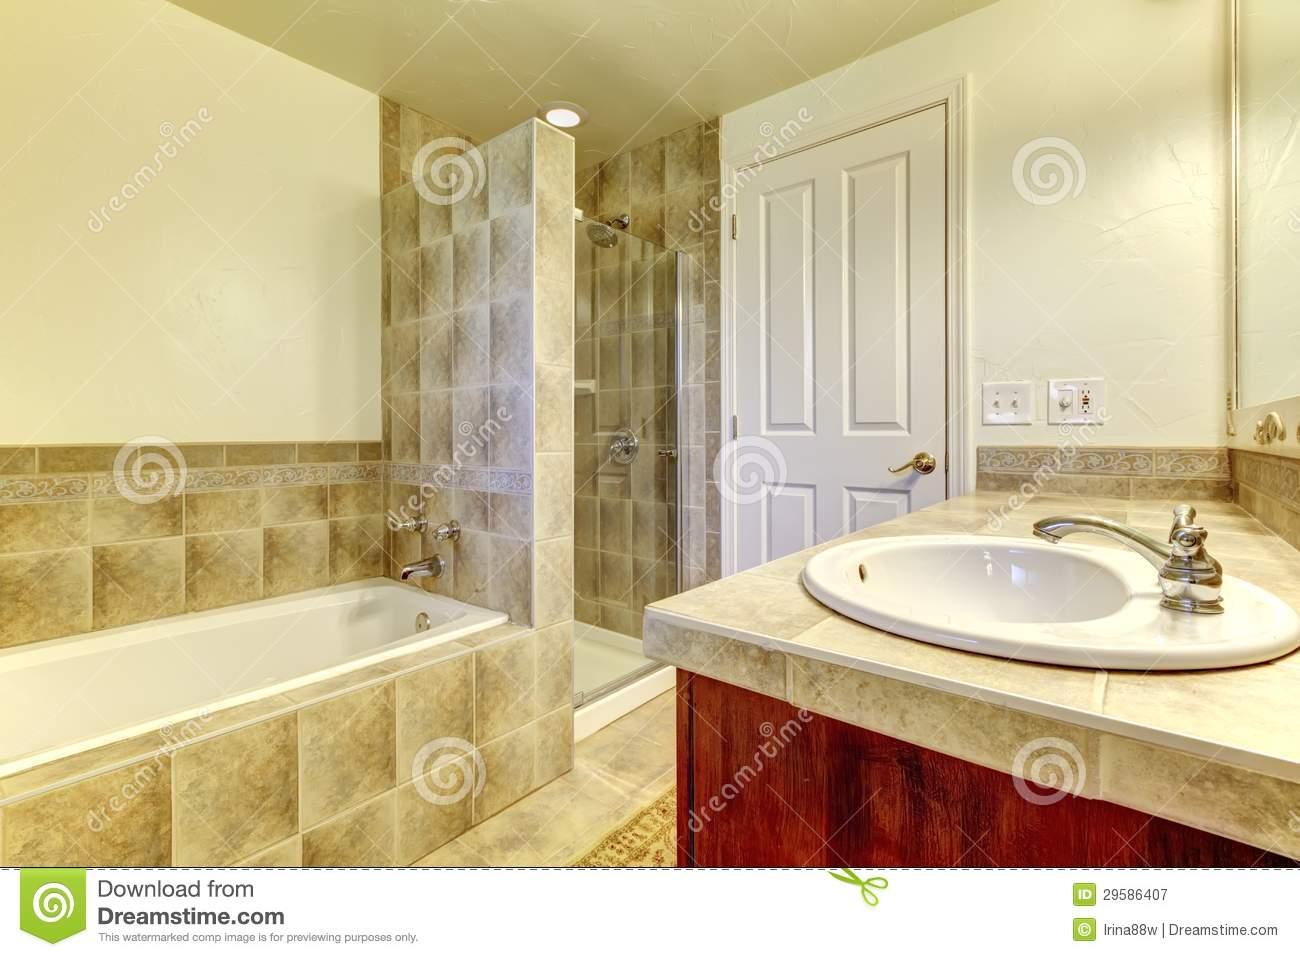 Bathroom With Tub Small Shower And Wood Cabinets Royalty